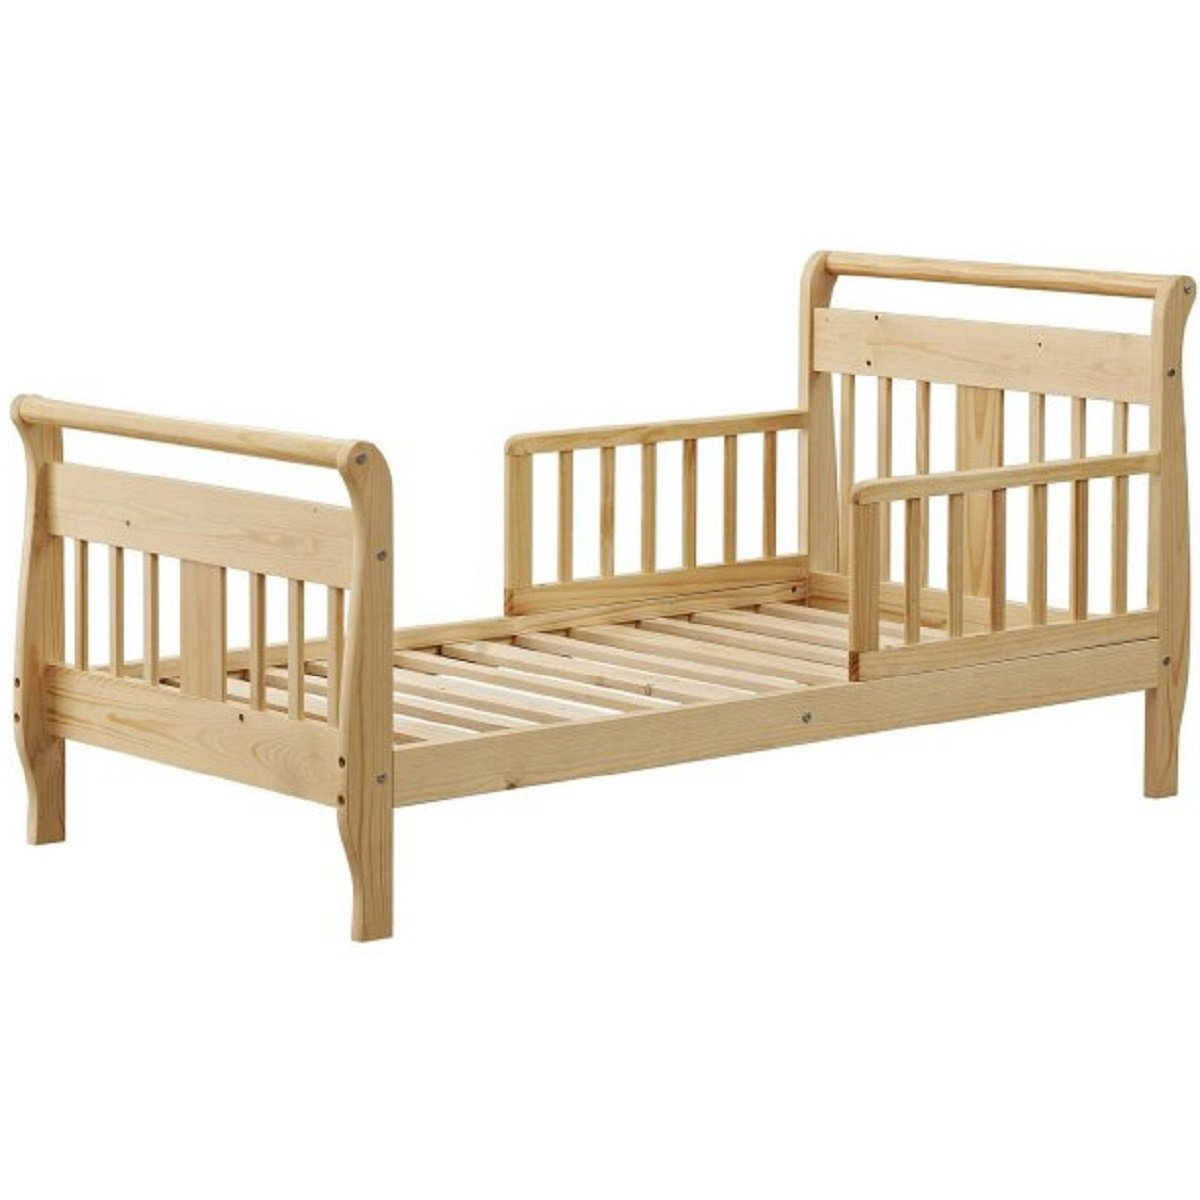 Natural Solid Hardwood Construction Sleigh-Style Design Baby Relax Sleigh Toddler Bed, Dimensions 56.50x28.78x28.25